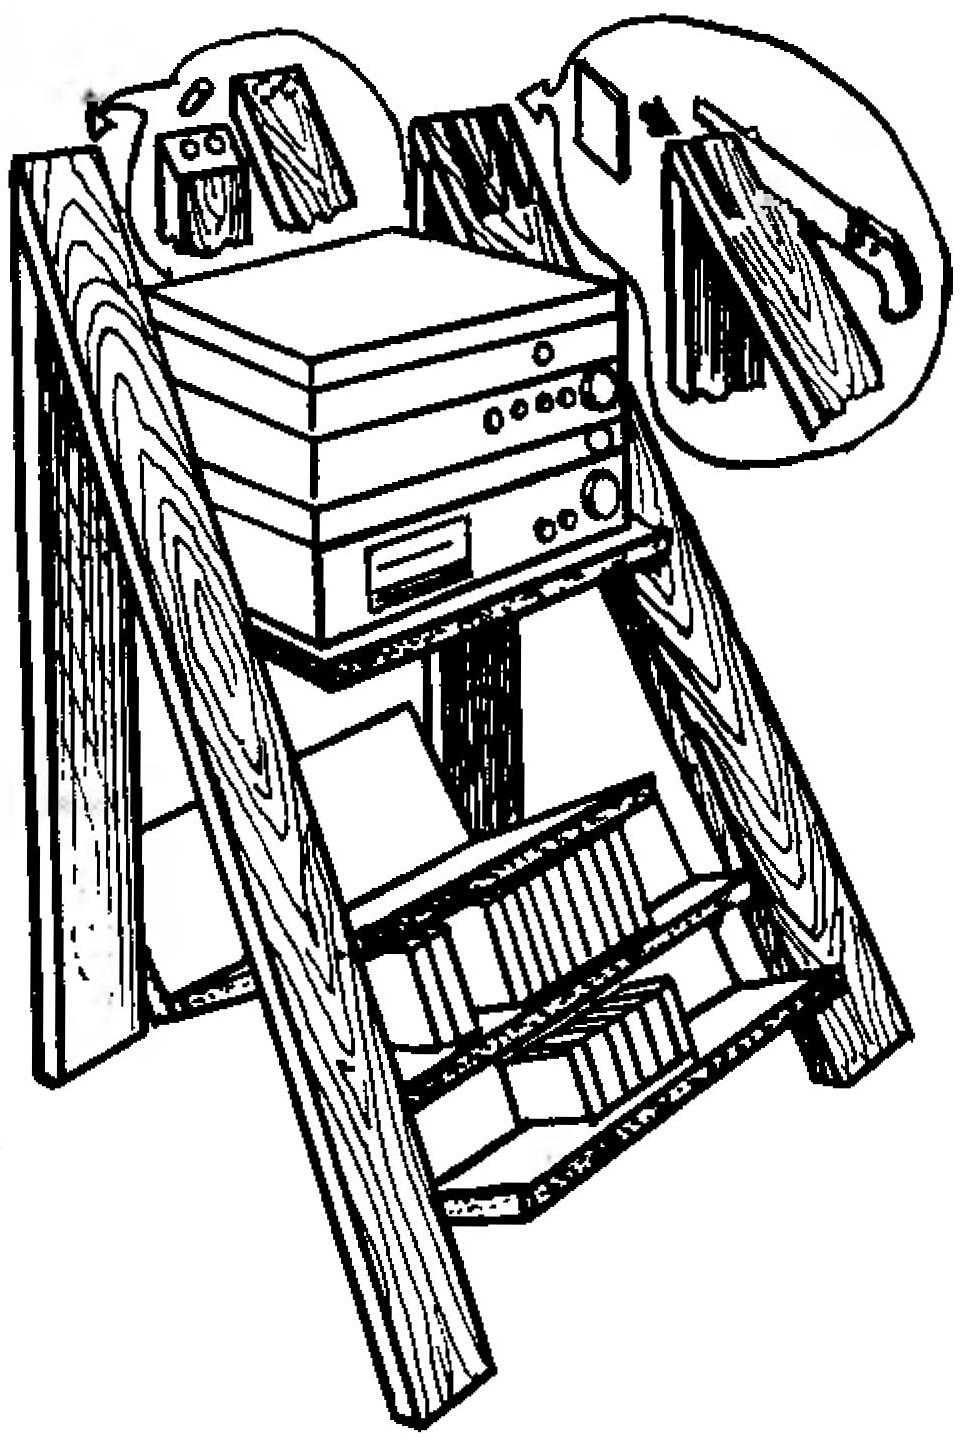 Fig. 4. Options for connecting the racks of the rack-ladder spikes (left) or inserts (right)